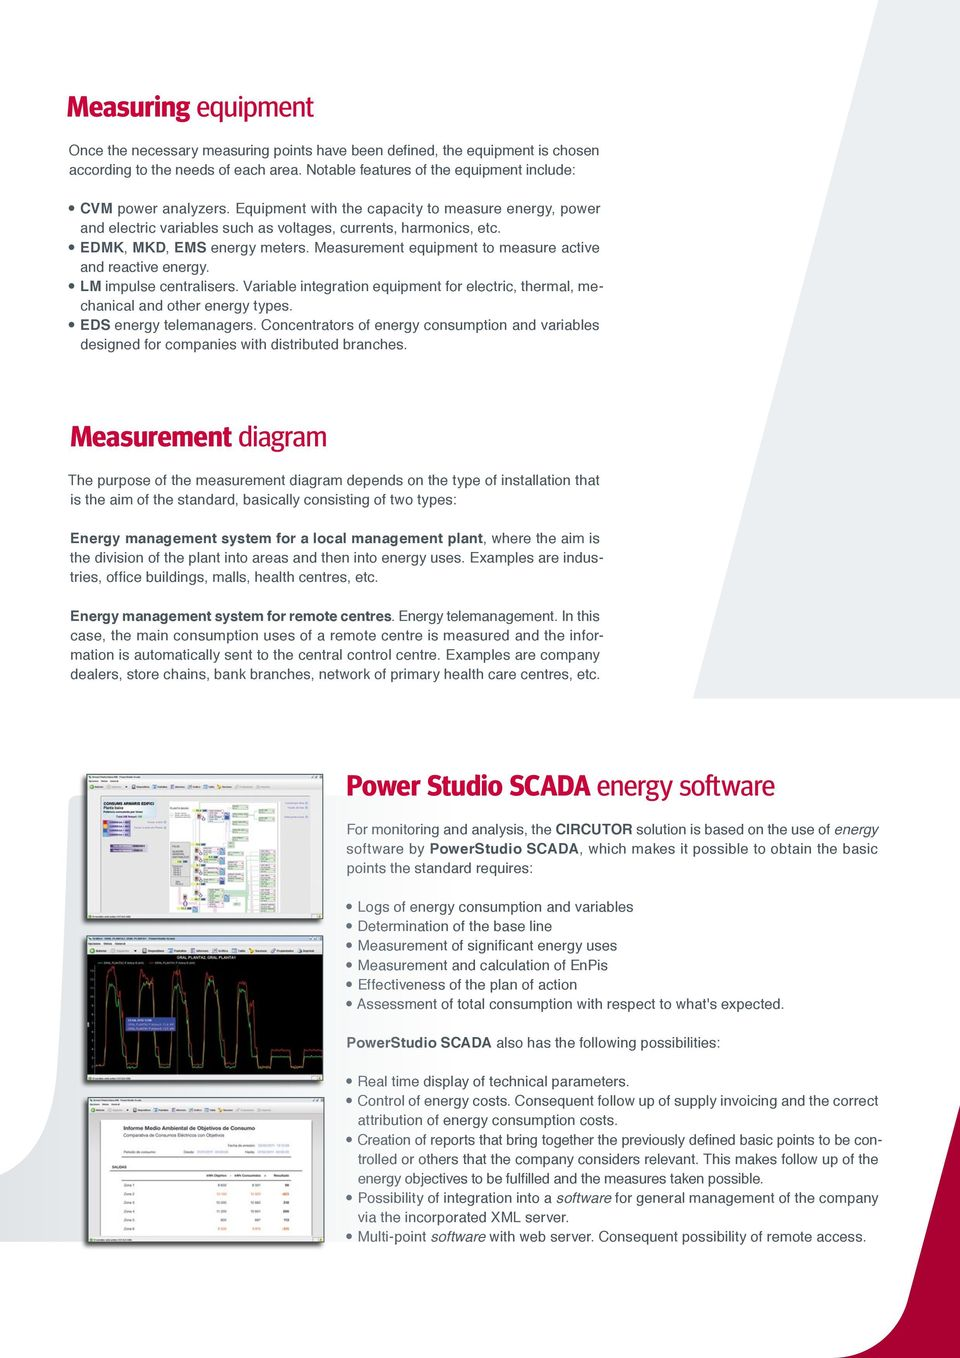 Measurement equipment to measure active and reactive energy. ylm impulse centralisers. Variable integration equipment for electric, thermal, mechanical and other energy types.